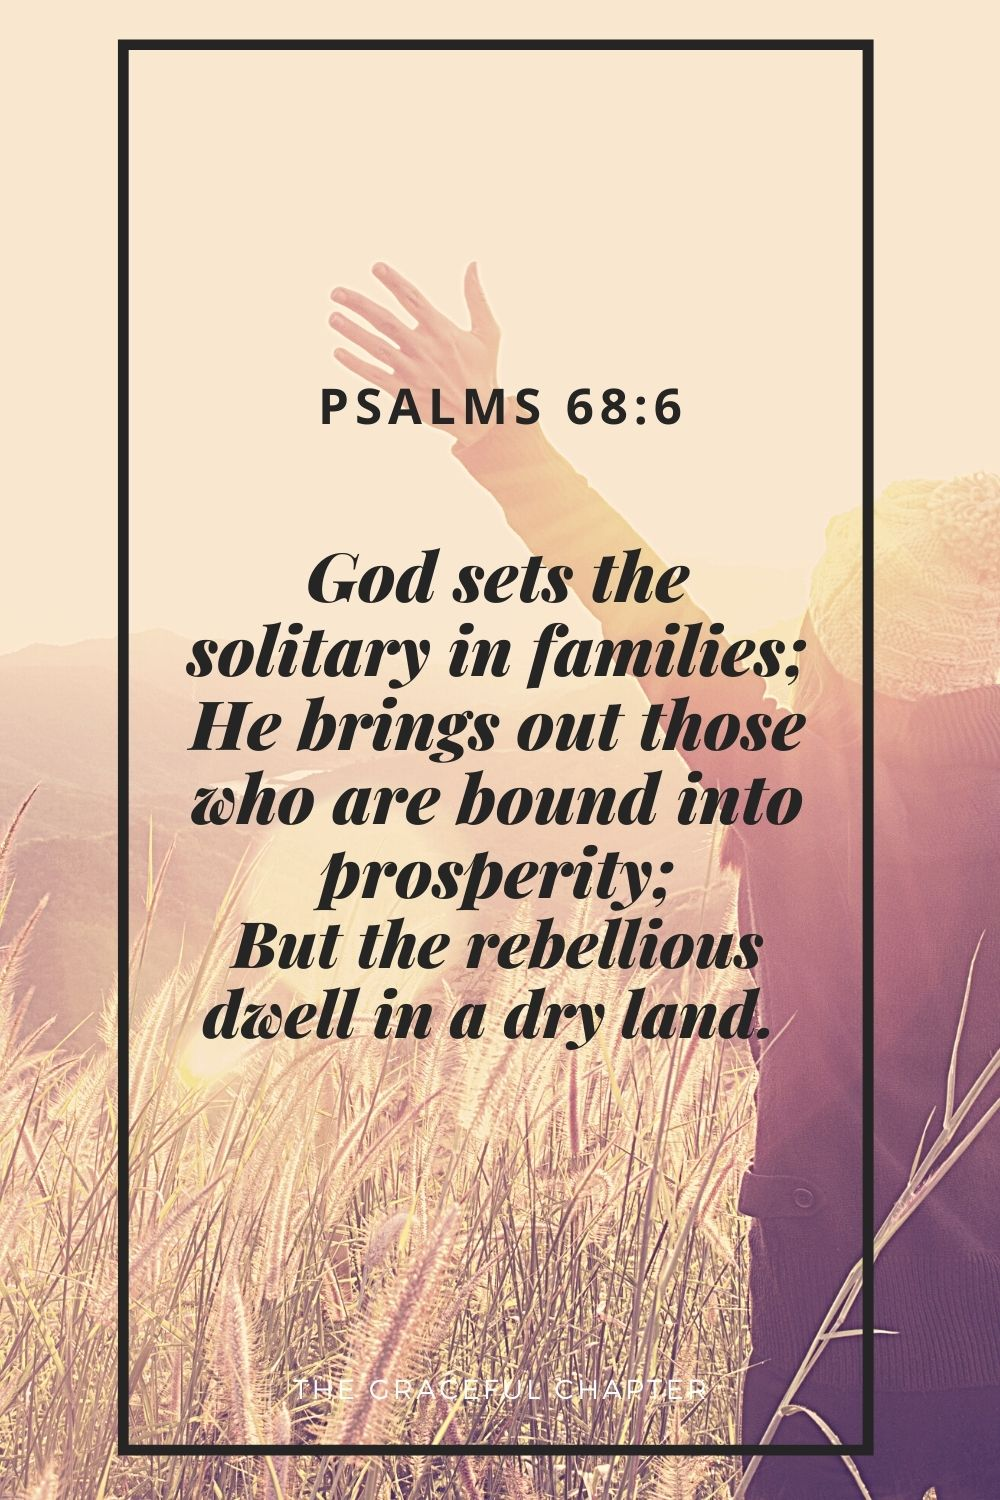 God sets the solitary in families; He brings out those who are bound into prosperity; But the rebellious dwell in a dry land.  Psalms 68:6